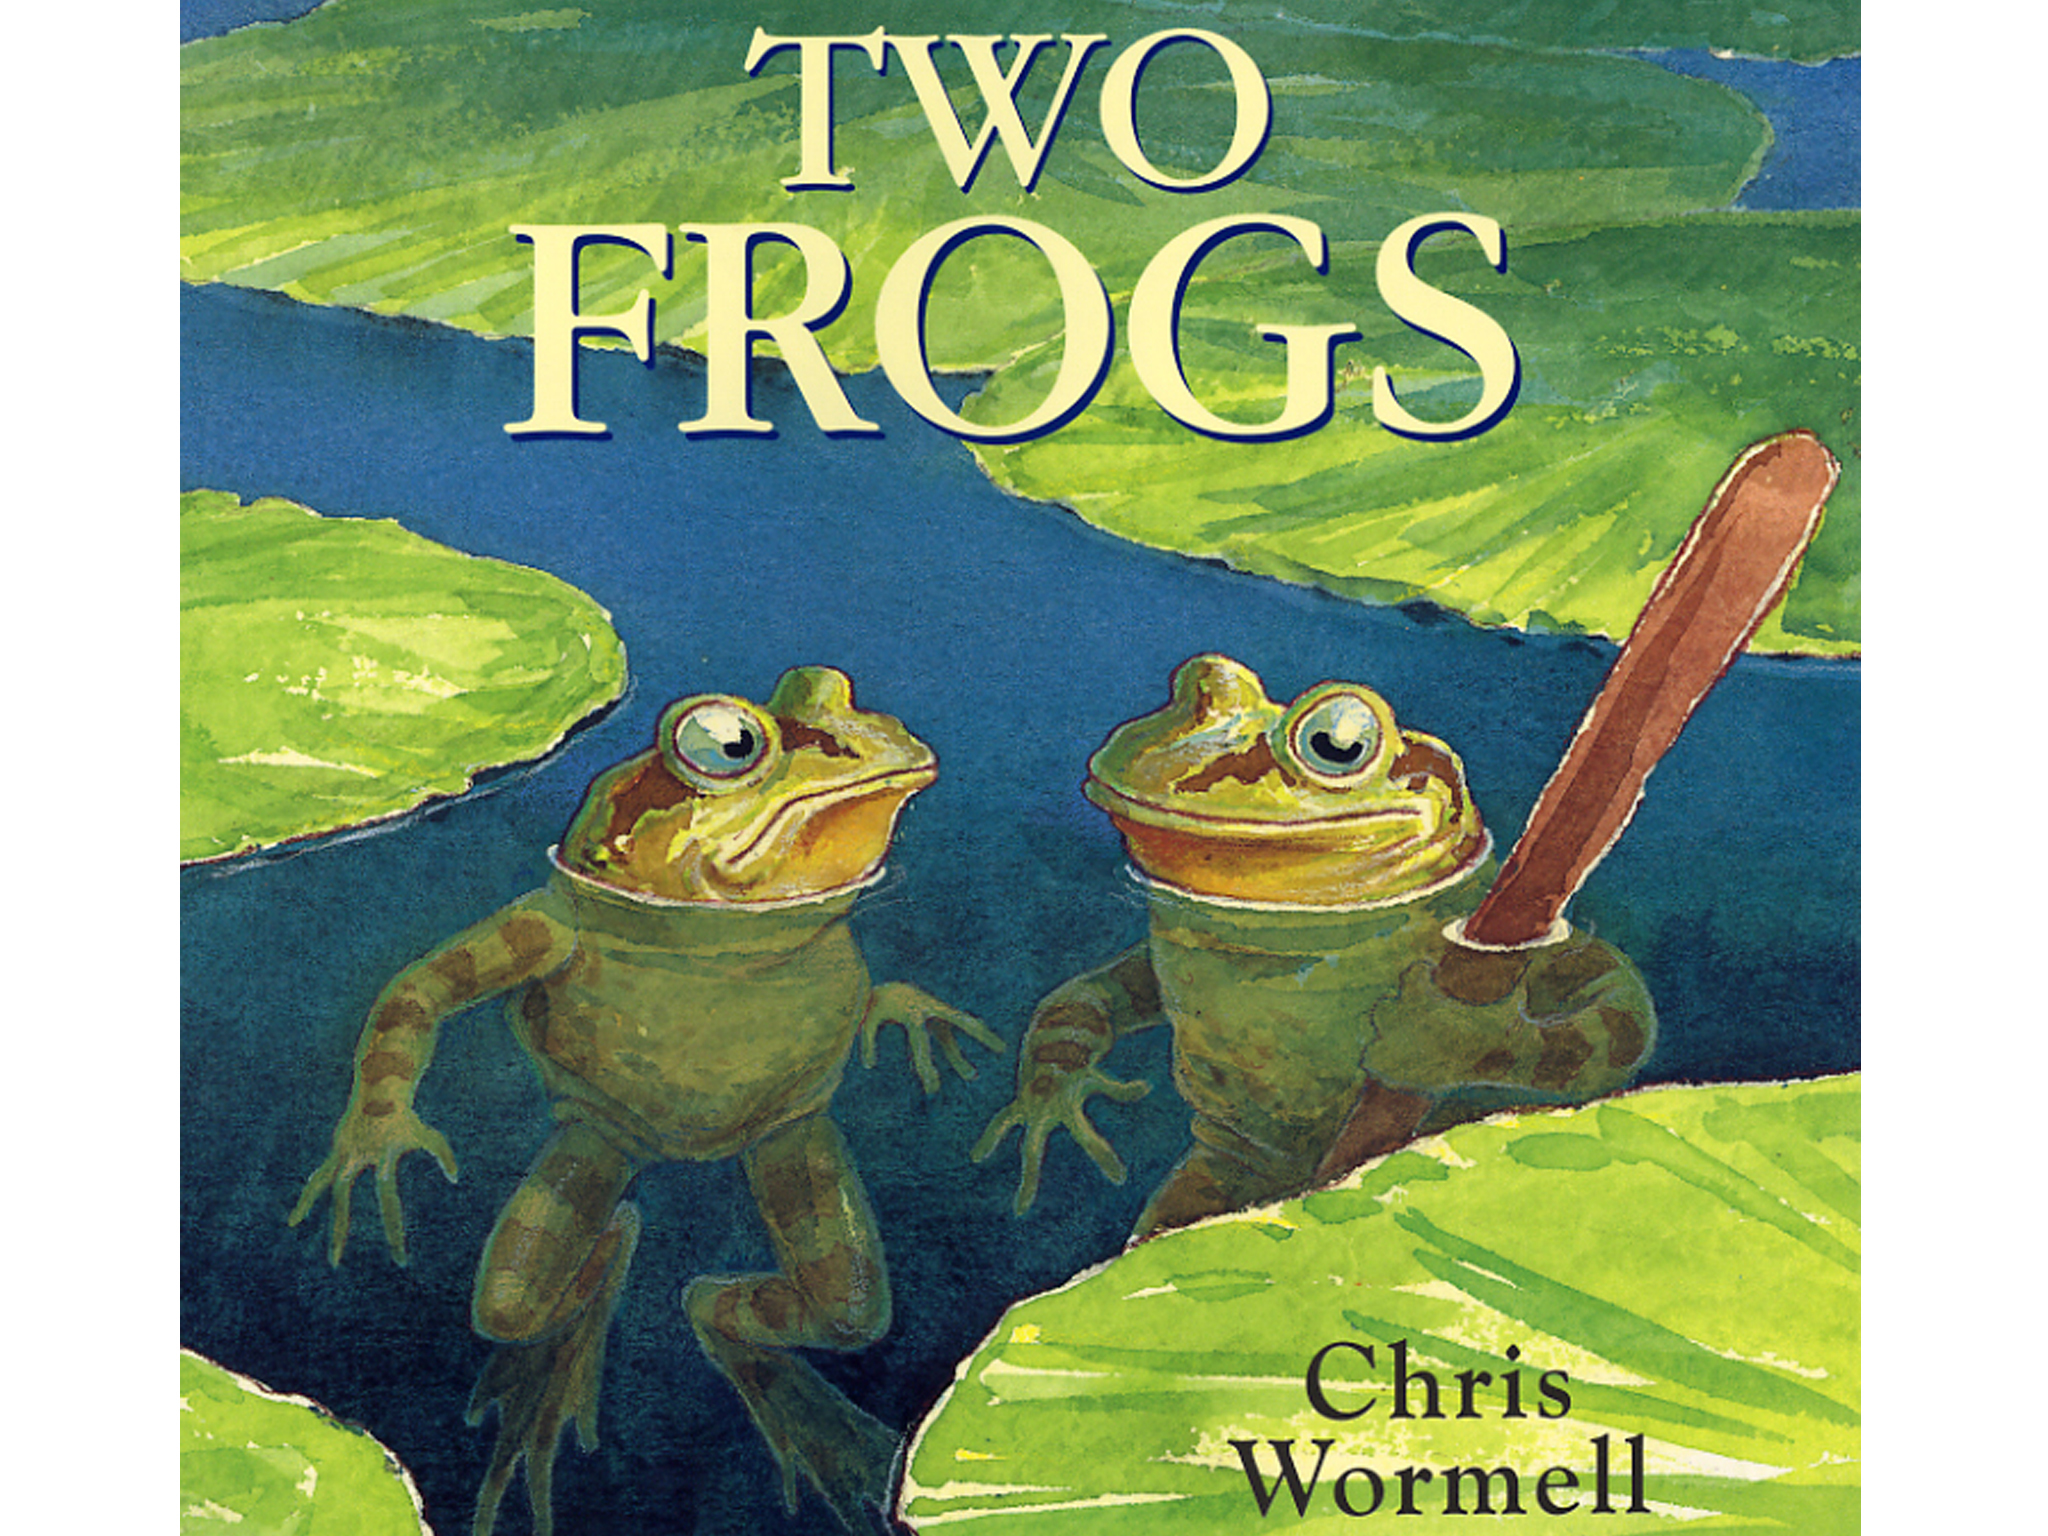 100 best children's books: Two Frogs